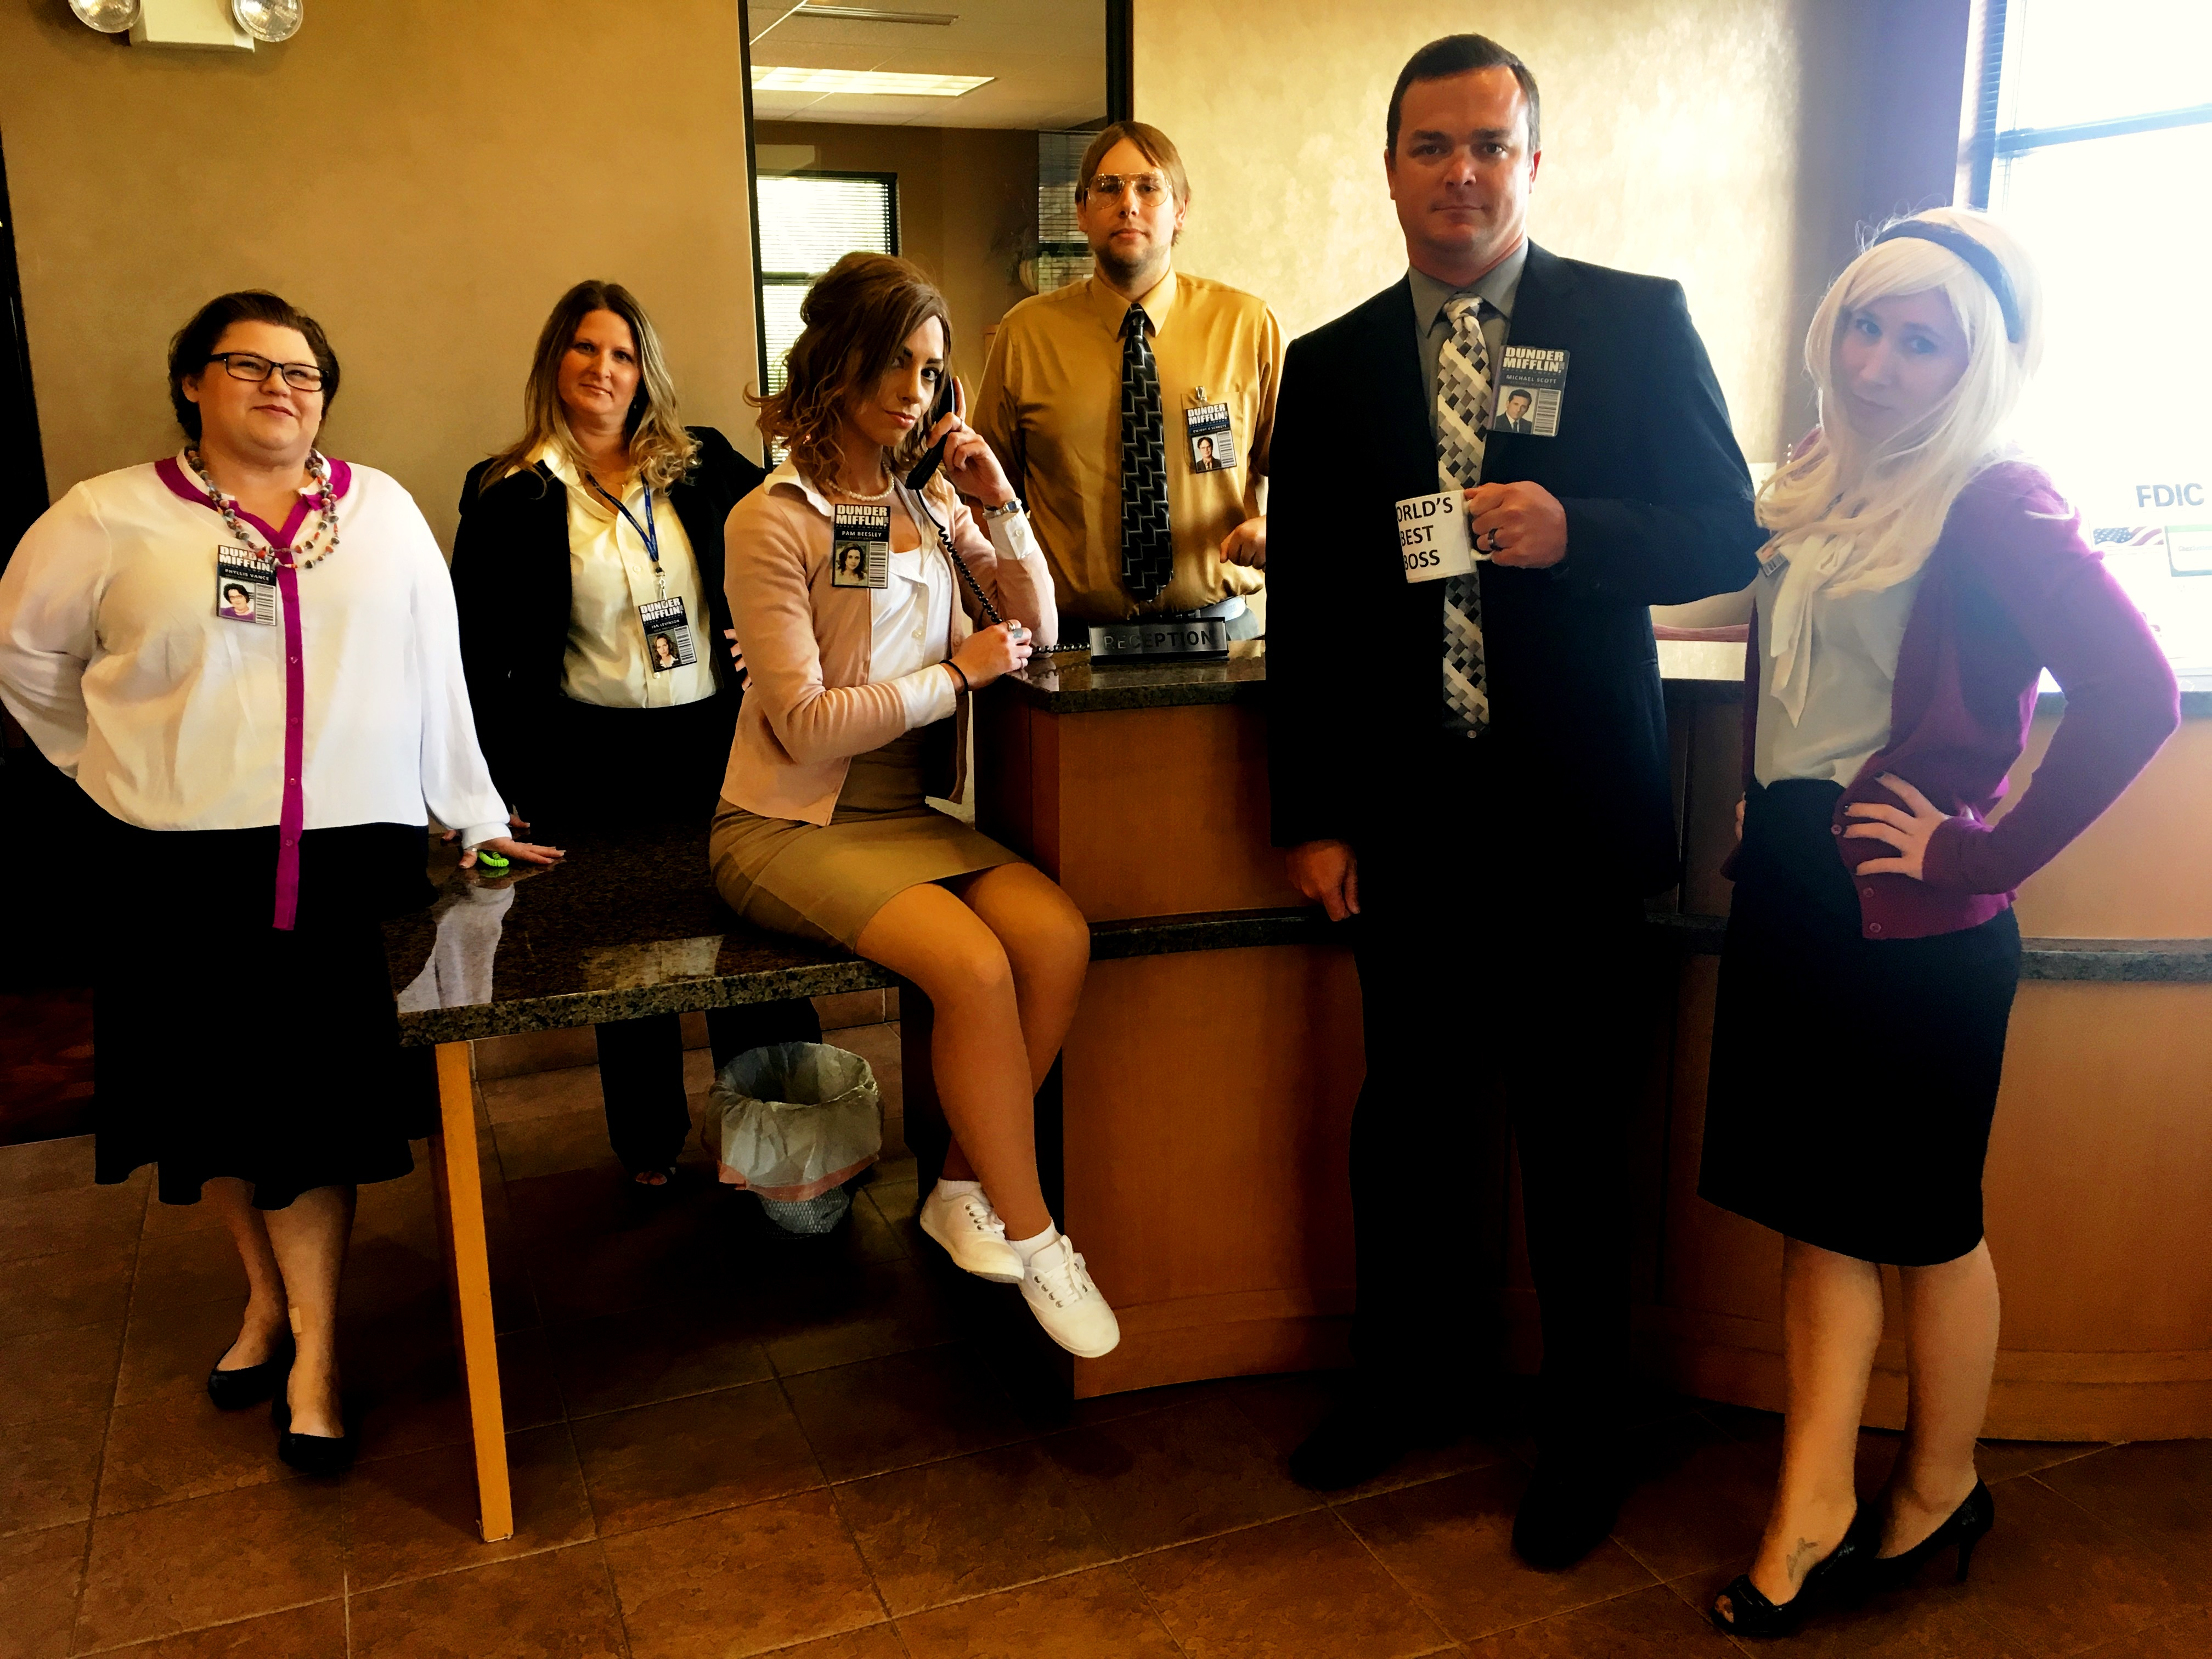 Murphy-Wall State Bank and Trust Company employees dress up as characters from the show called The Office for 2017 Halloween